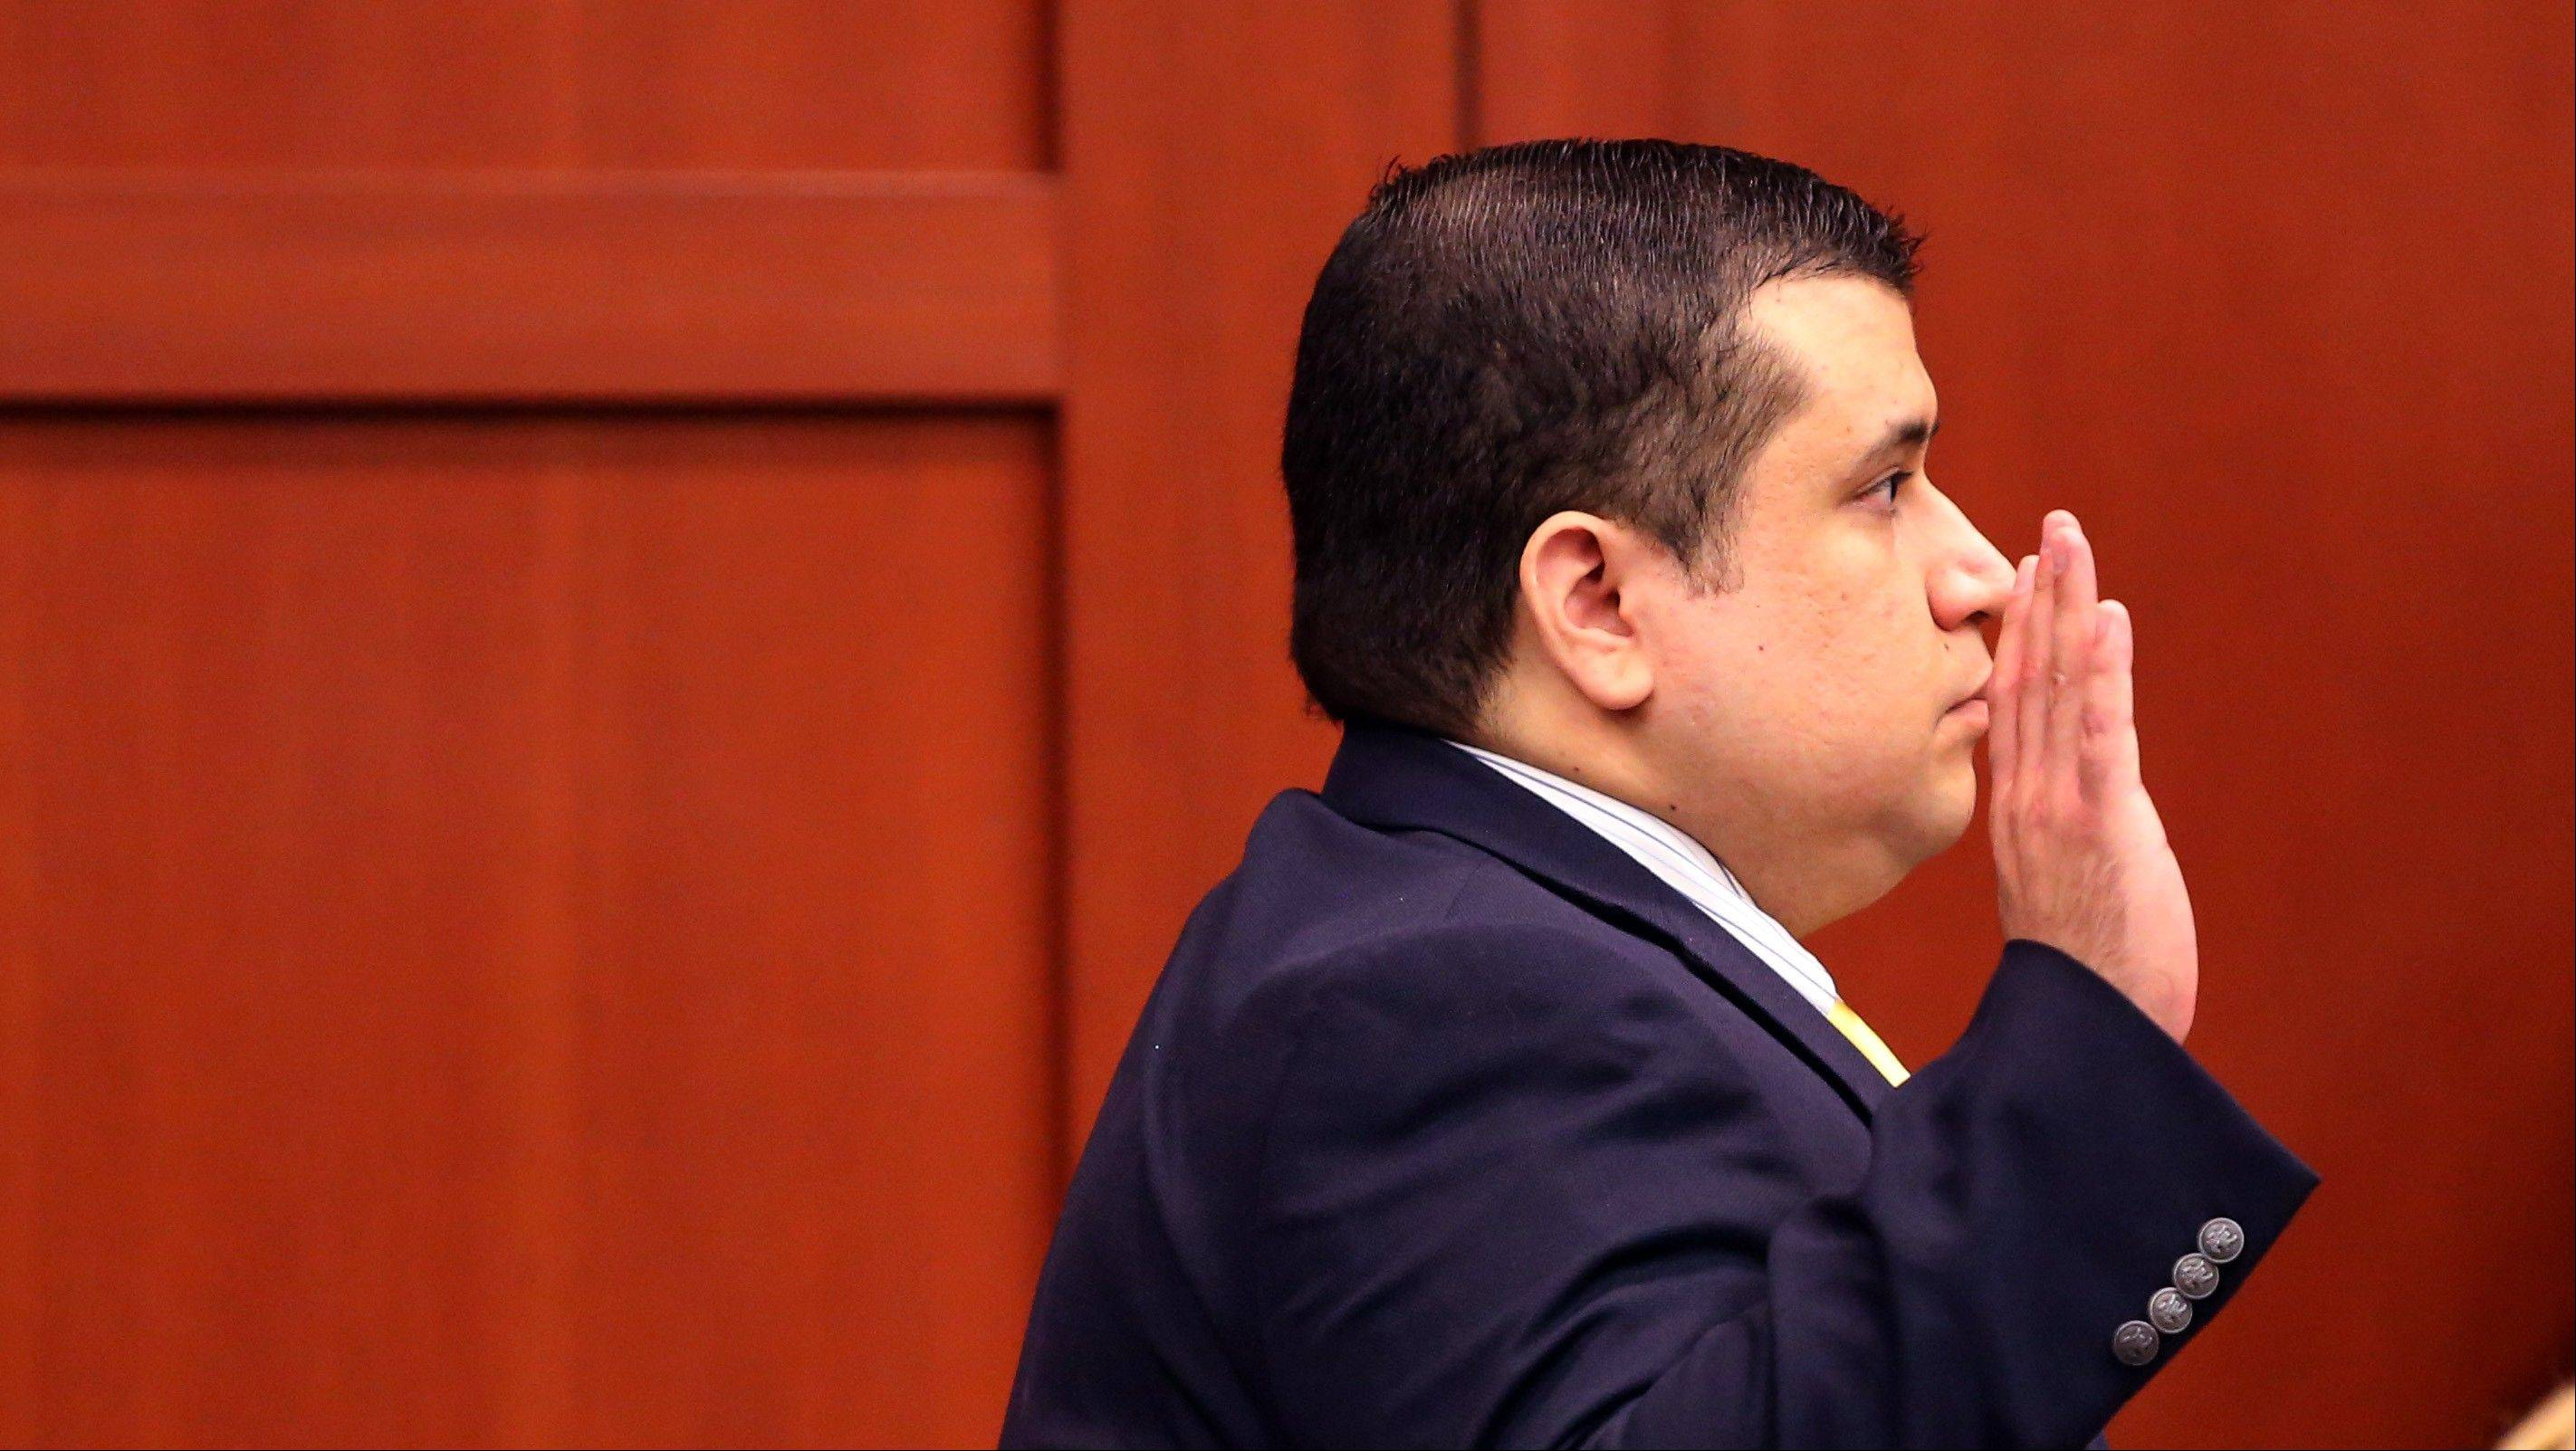 "George Zimmerman, defendant in the killing of Trayvon Martin, is sworn in before answering questions by the judge, in Seminole circuit court, in Sanford, Fla., during a pretrial hearing, Tuesday, April 30, 2013. Zimmerman says he agrees with his attorneys' decision not to seek an immunity hearing under the state's ""Stand Your Ground"" self-defense law."